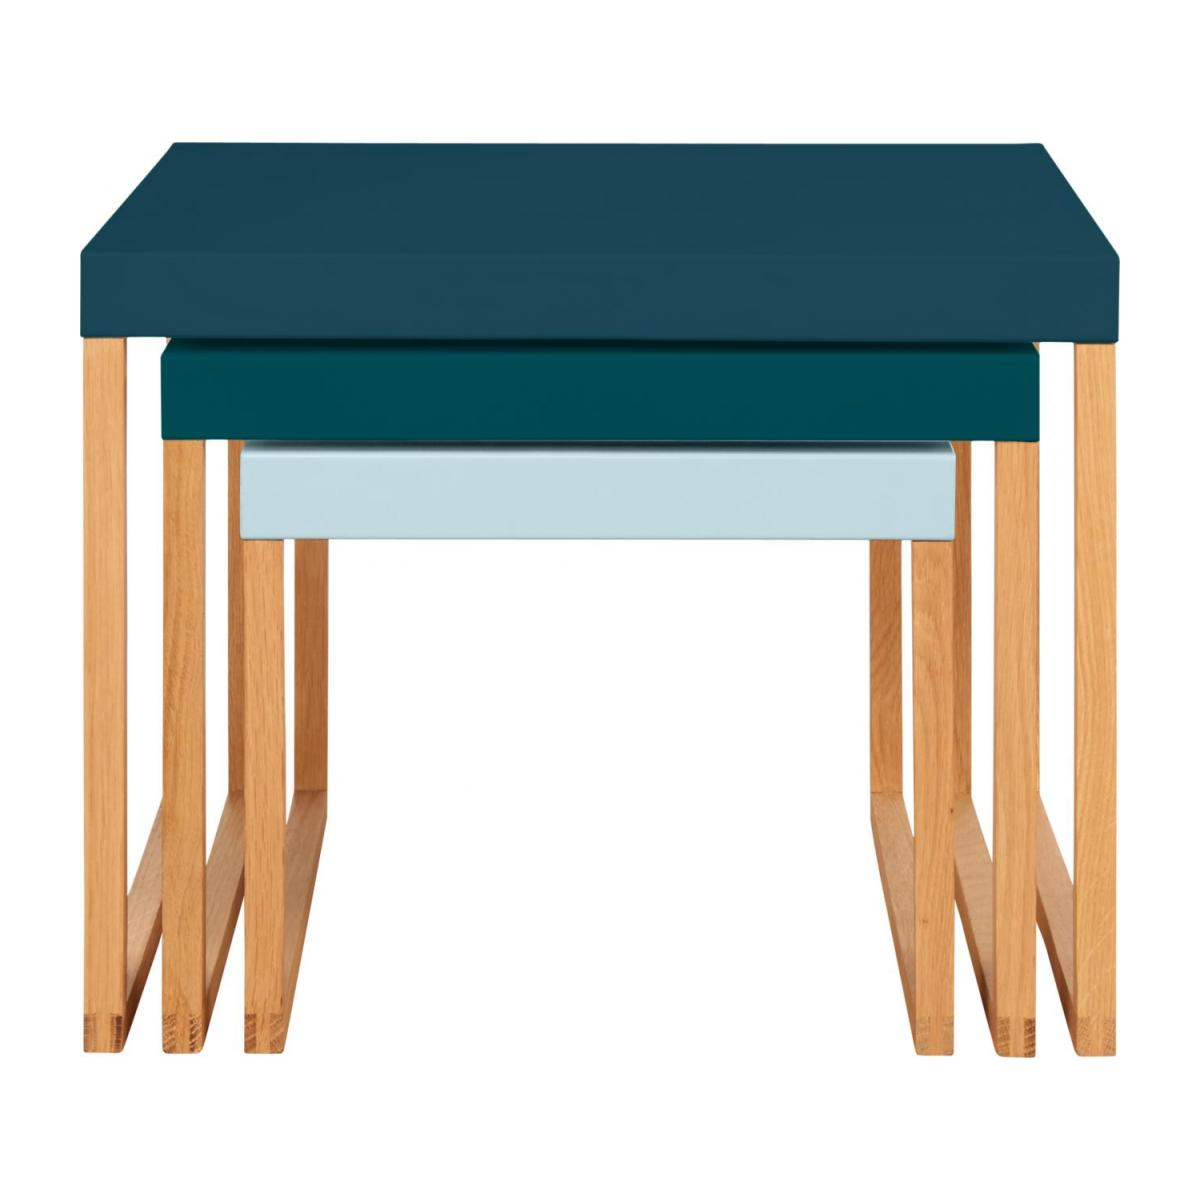 Tables gigognes - Bleu paon n°3